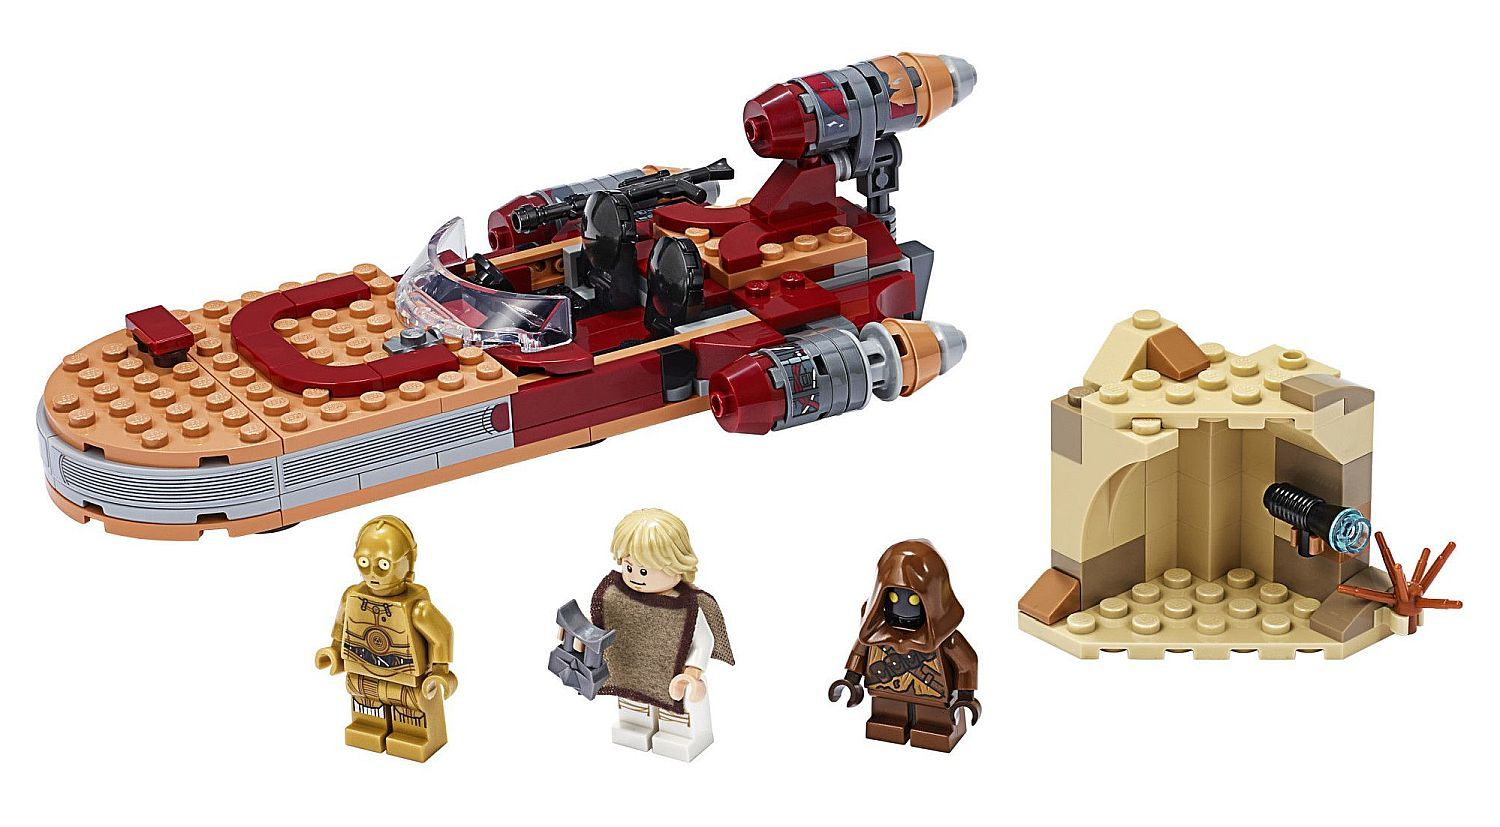 Конструктор Lego Star Wars - Luke Skywalker's Landspeeder (75271) - 3